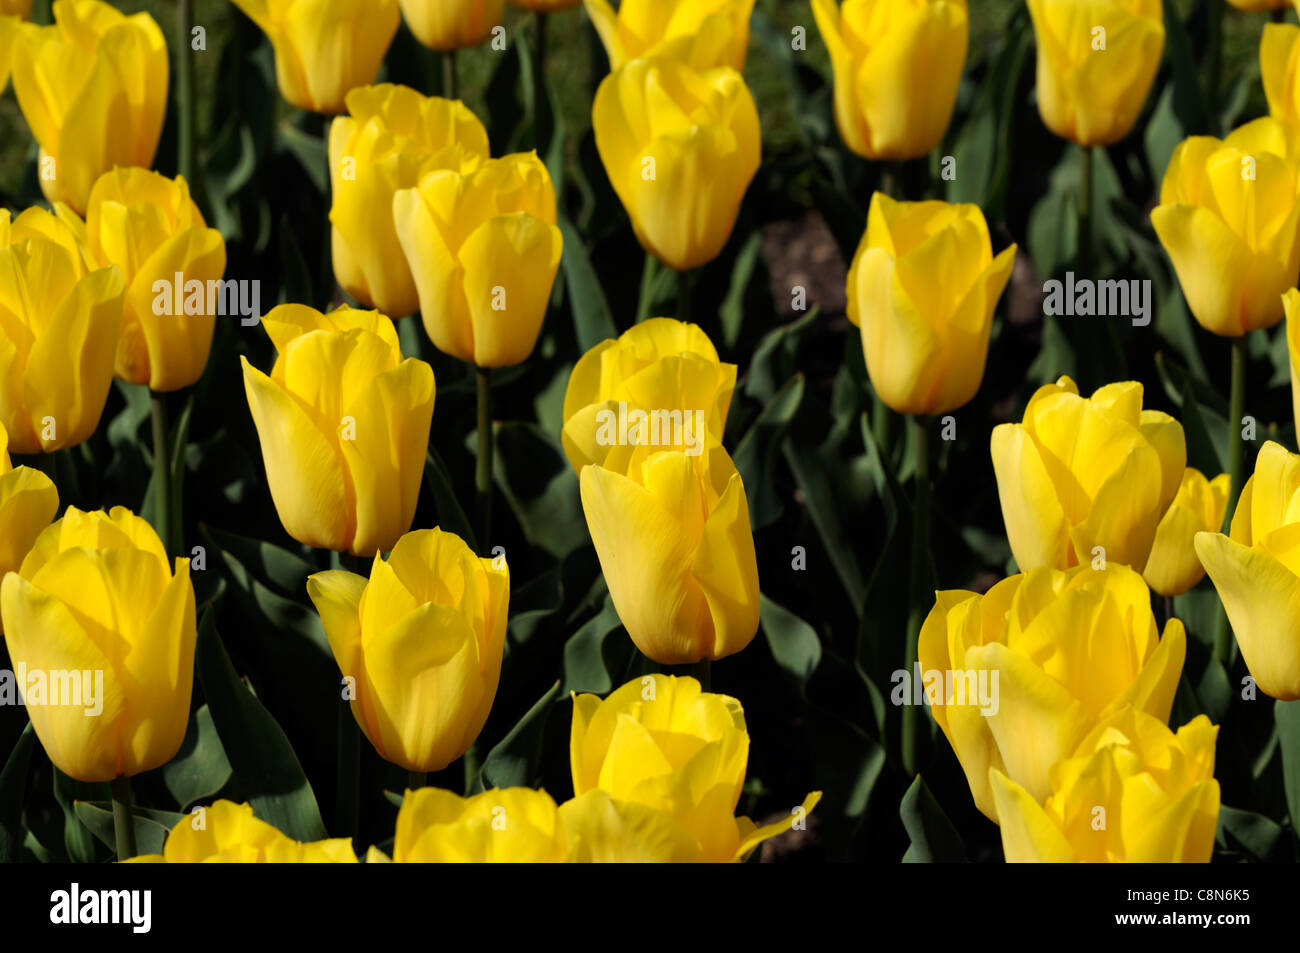 Tulipa Tulip yellow golden melody triumph group flowers spring flower bloom blossom - Stock Image